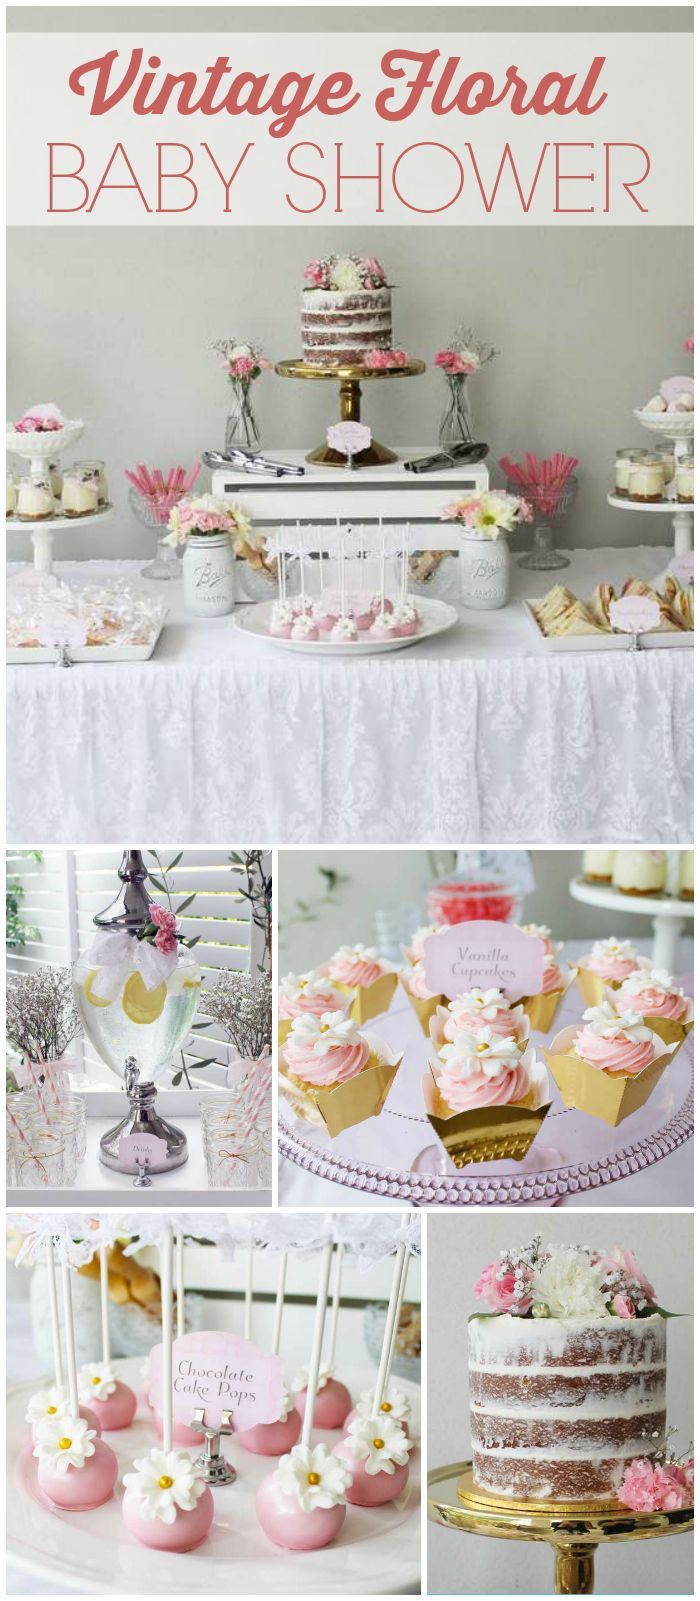 Most baby showers are hosted right around lunch time which can leave - A Lovely Vintage Floral Lace Baby Shower With A Gorgeous Cake And Pretty Party Decor